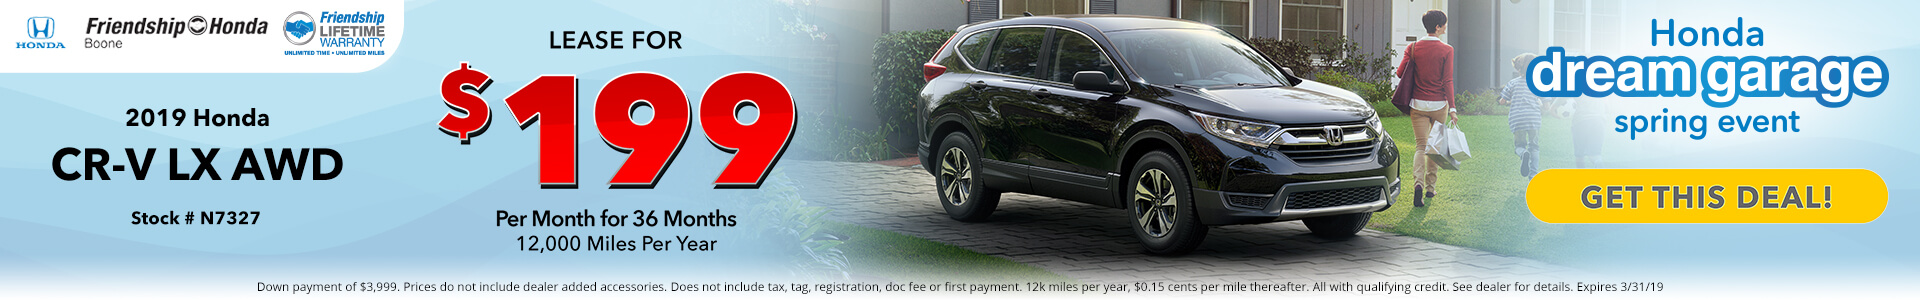 Honda CR-V $199 Lease